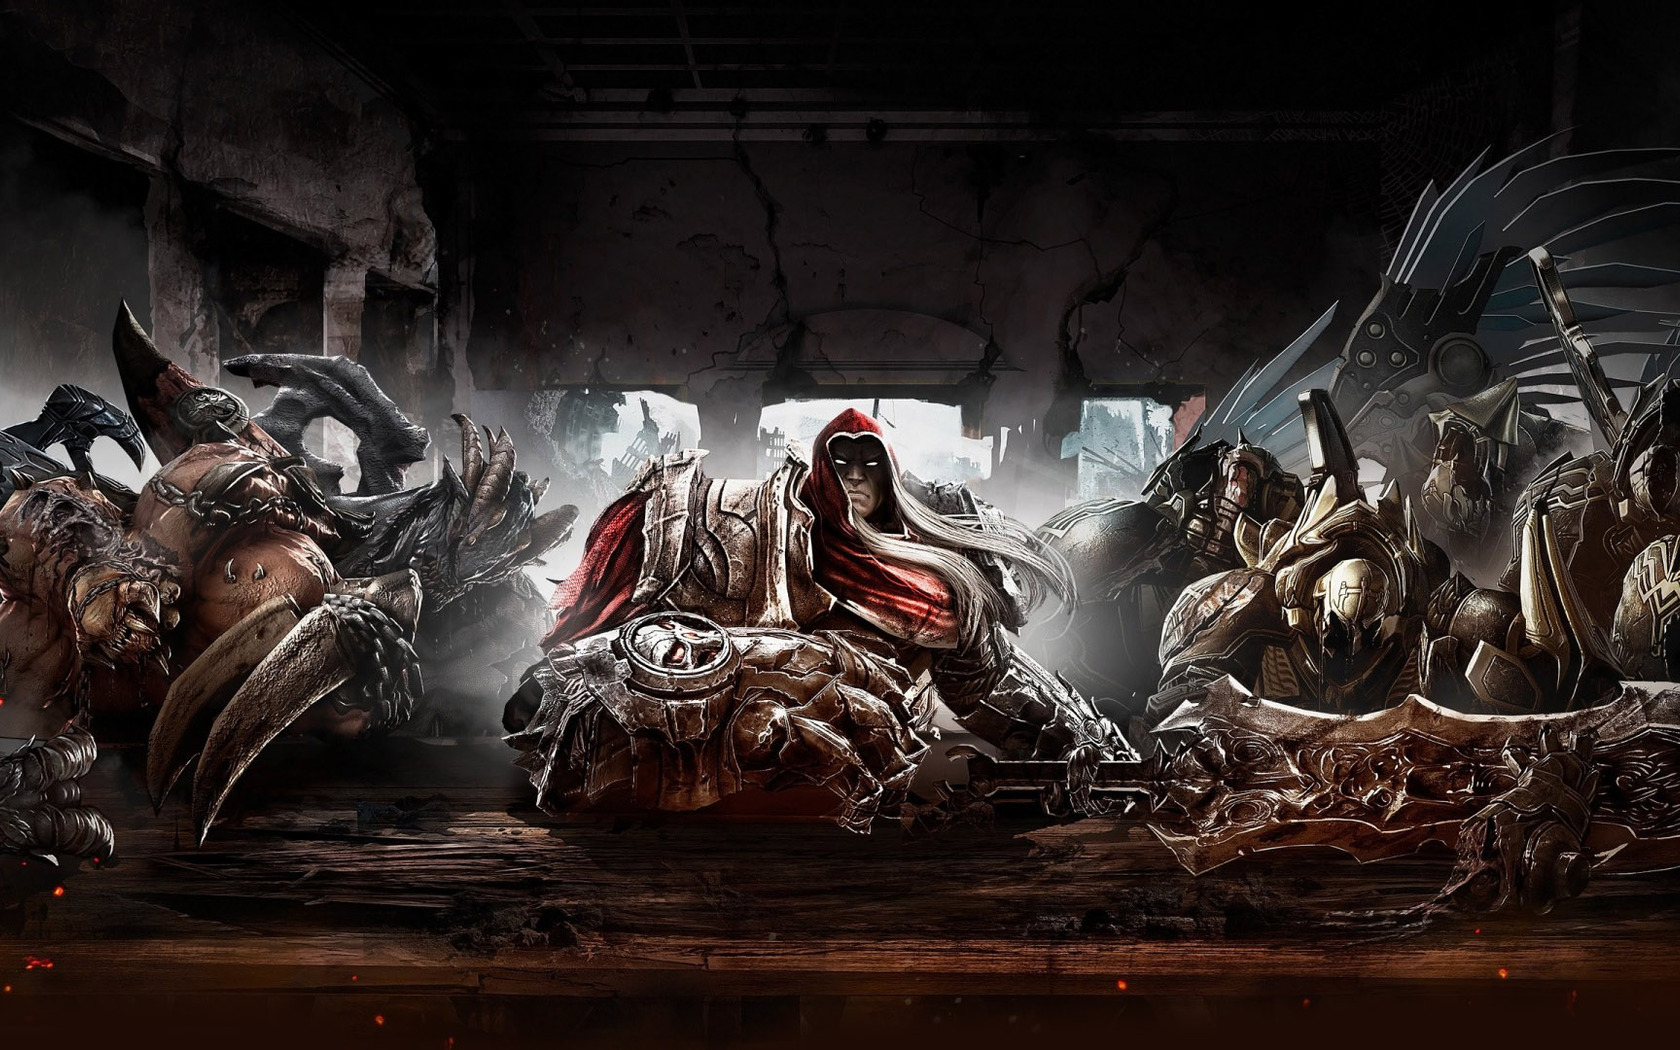 Darksiders wallpaper 11134 1680x1050